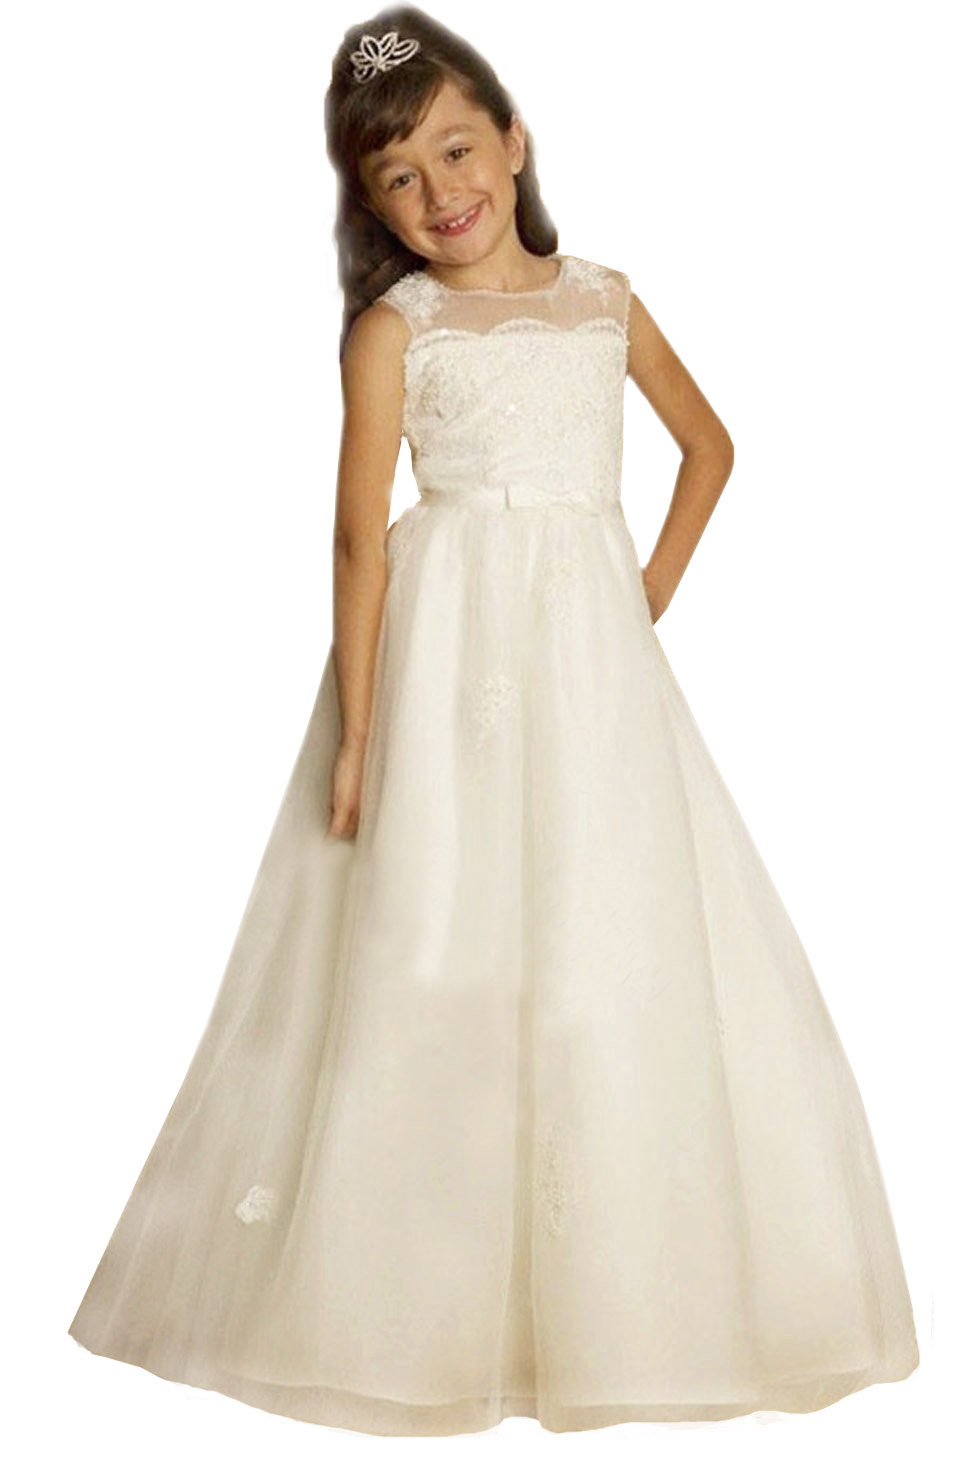 2016 New  Flower Girls Dresses For Wedding Gowns  Lace Girl Birthday Party Dress First Communion Dresses For Girls